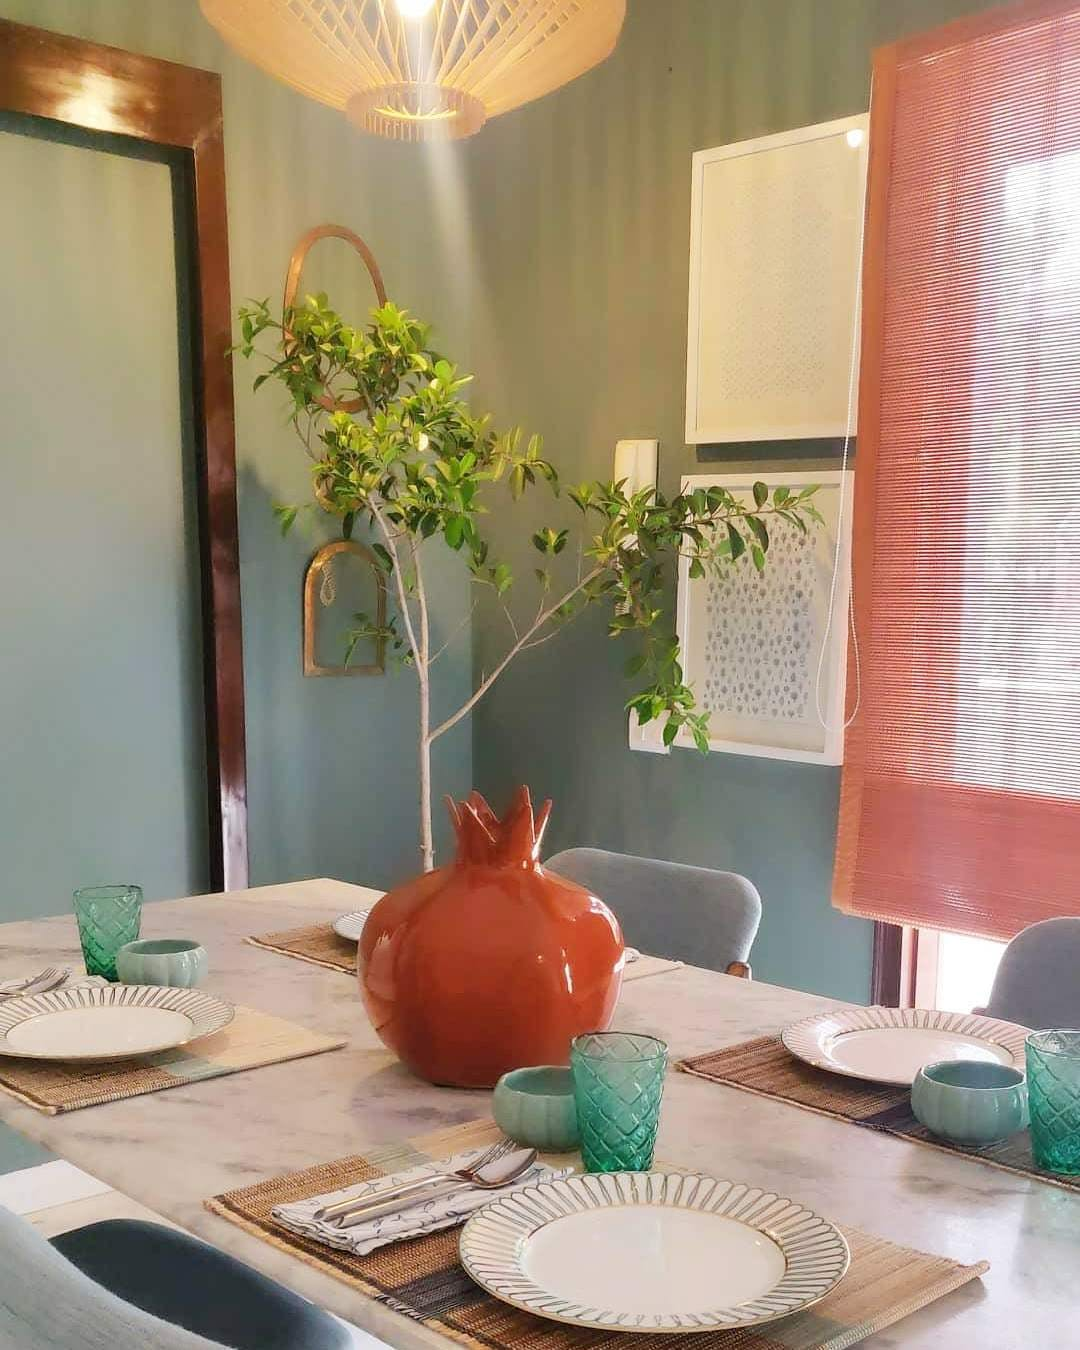 Room,Dining room,Interior design,Property,Table,Green,Furniture,House,Living room,Home